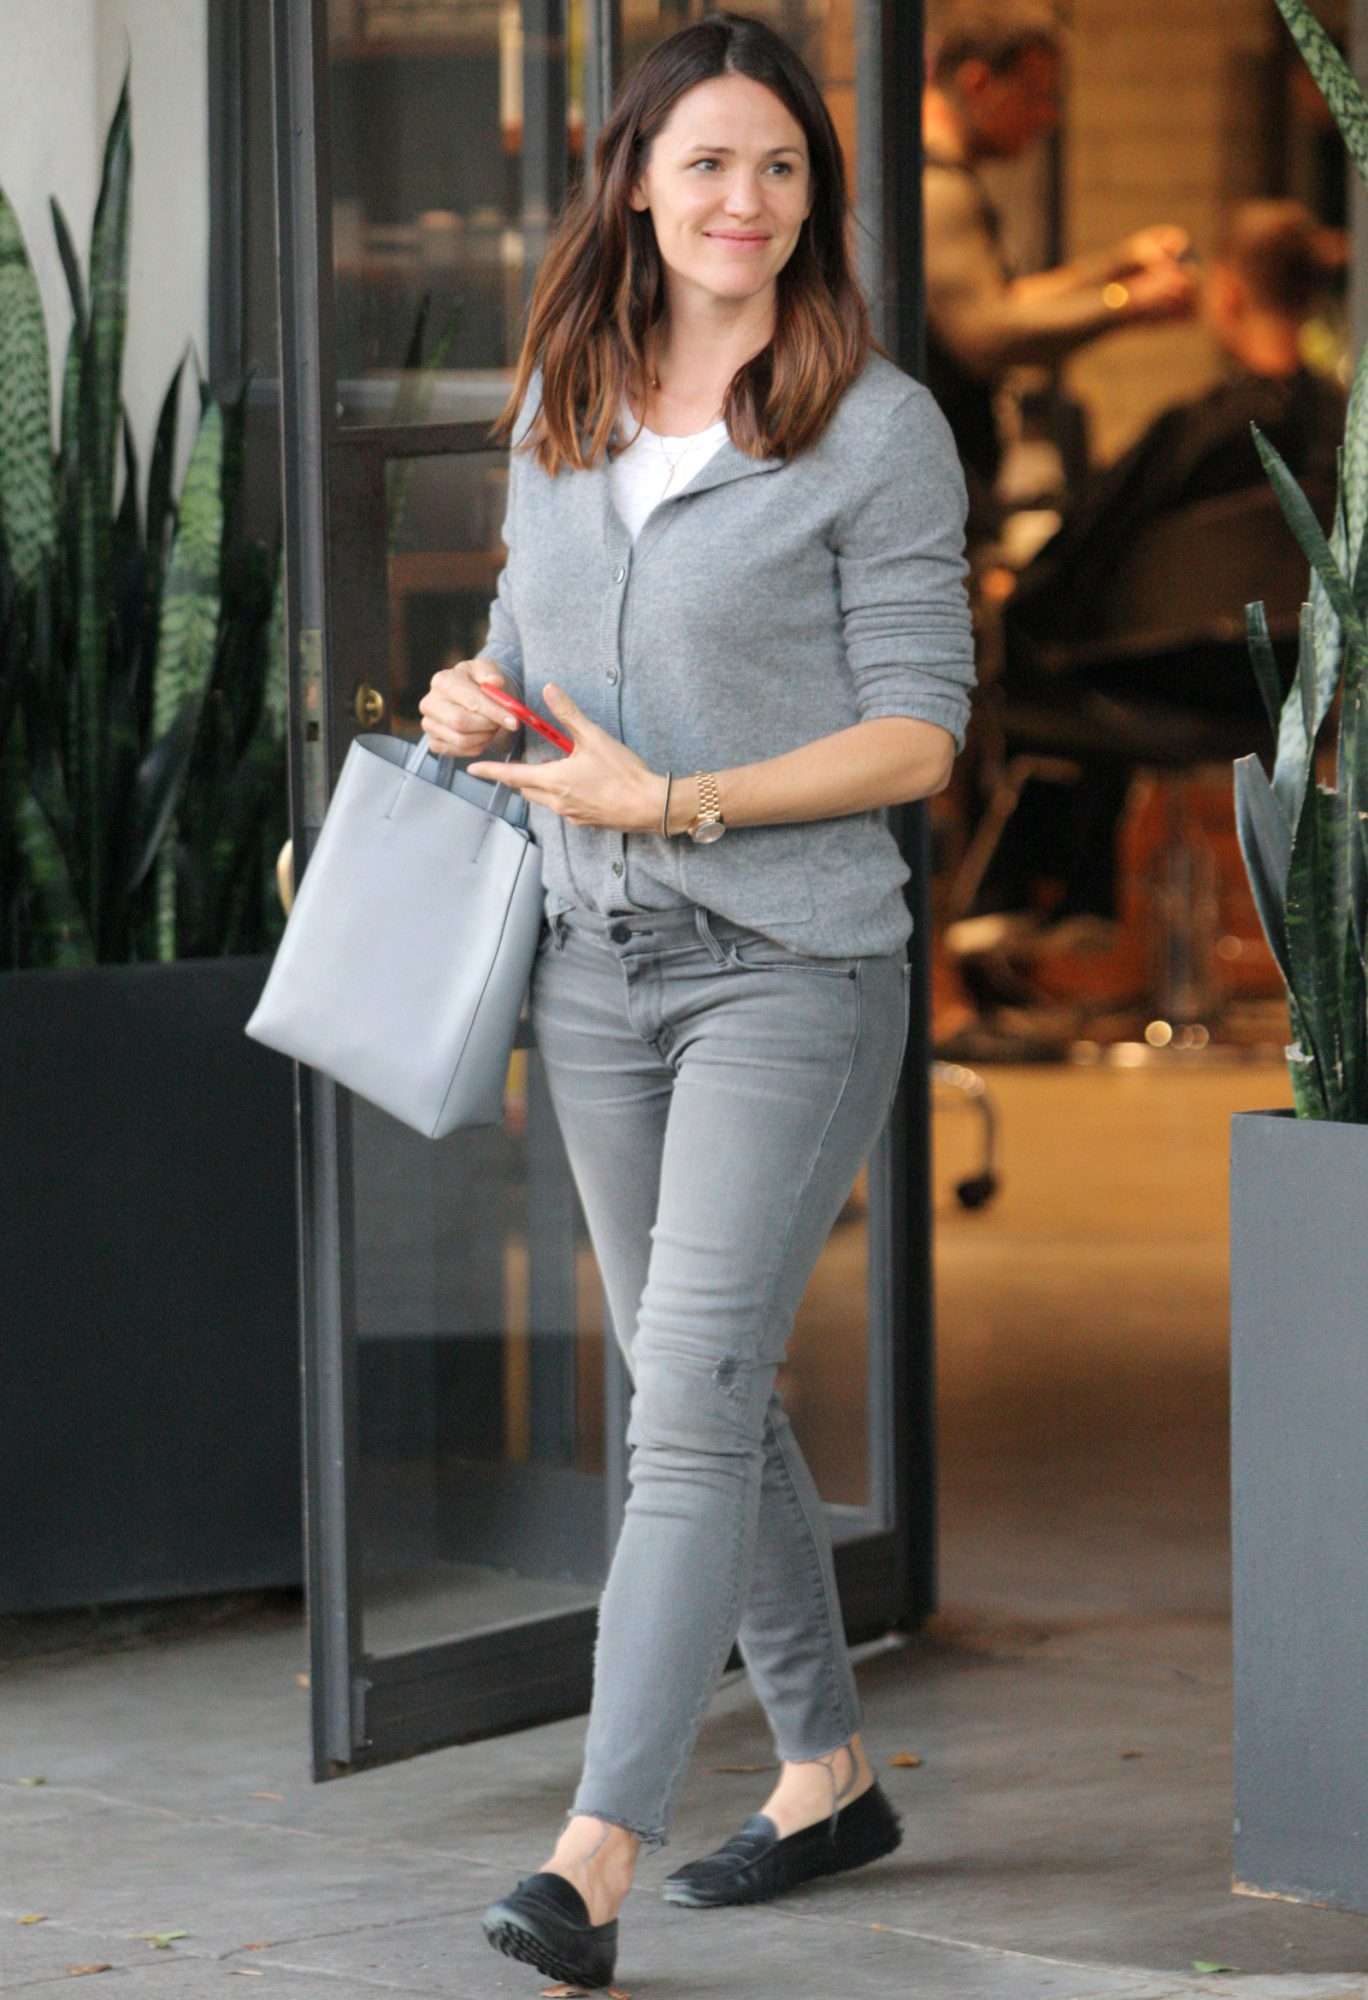 Beverly Hills, CA - Beverly Hills, CA - Jennifer Garner leaves the salon with a smile on Wednesday evening. The brunette actress is wearing grey skinny jeans and a grey cardigan paired with flats.